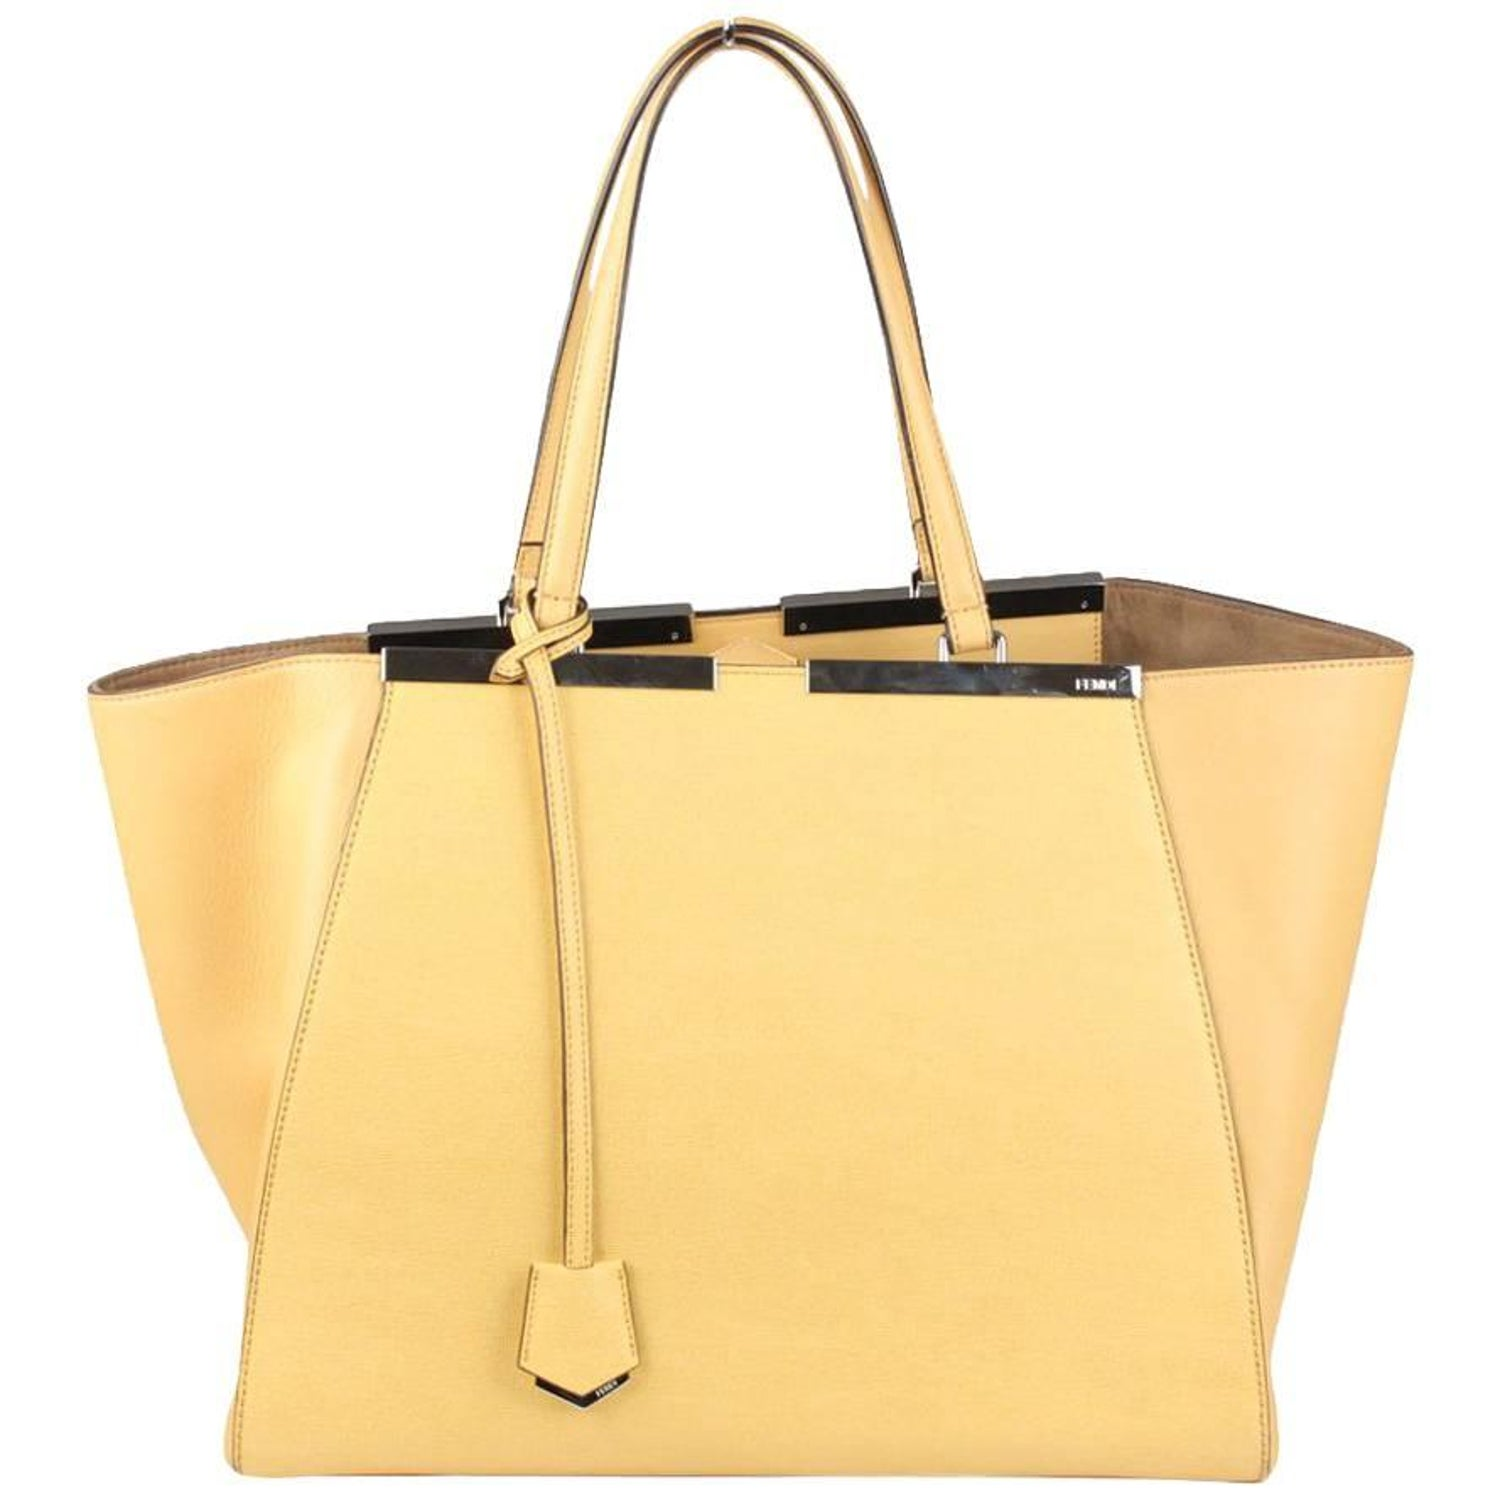 9762a7a9beae FENDI Cream Leather Large 3Jours Tote Shopping Bag For Sale at 1stdibs